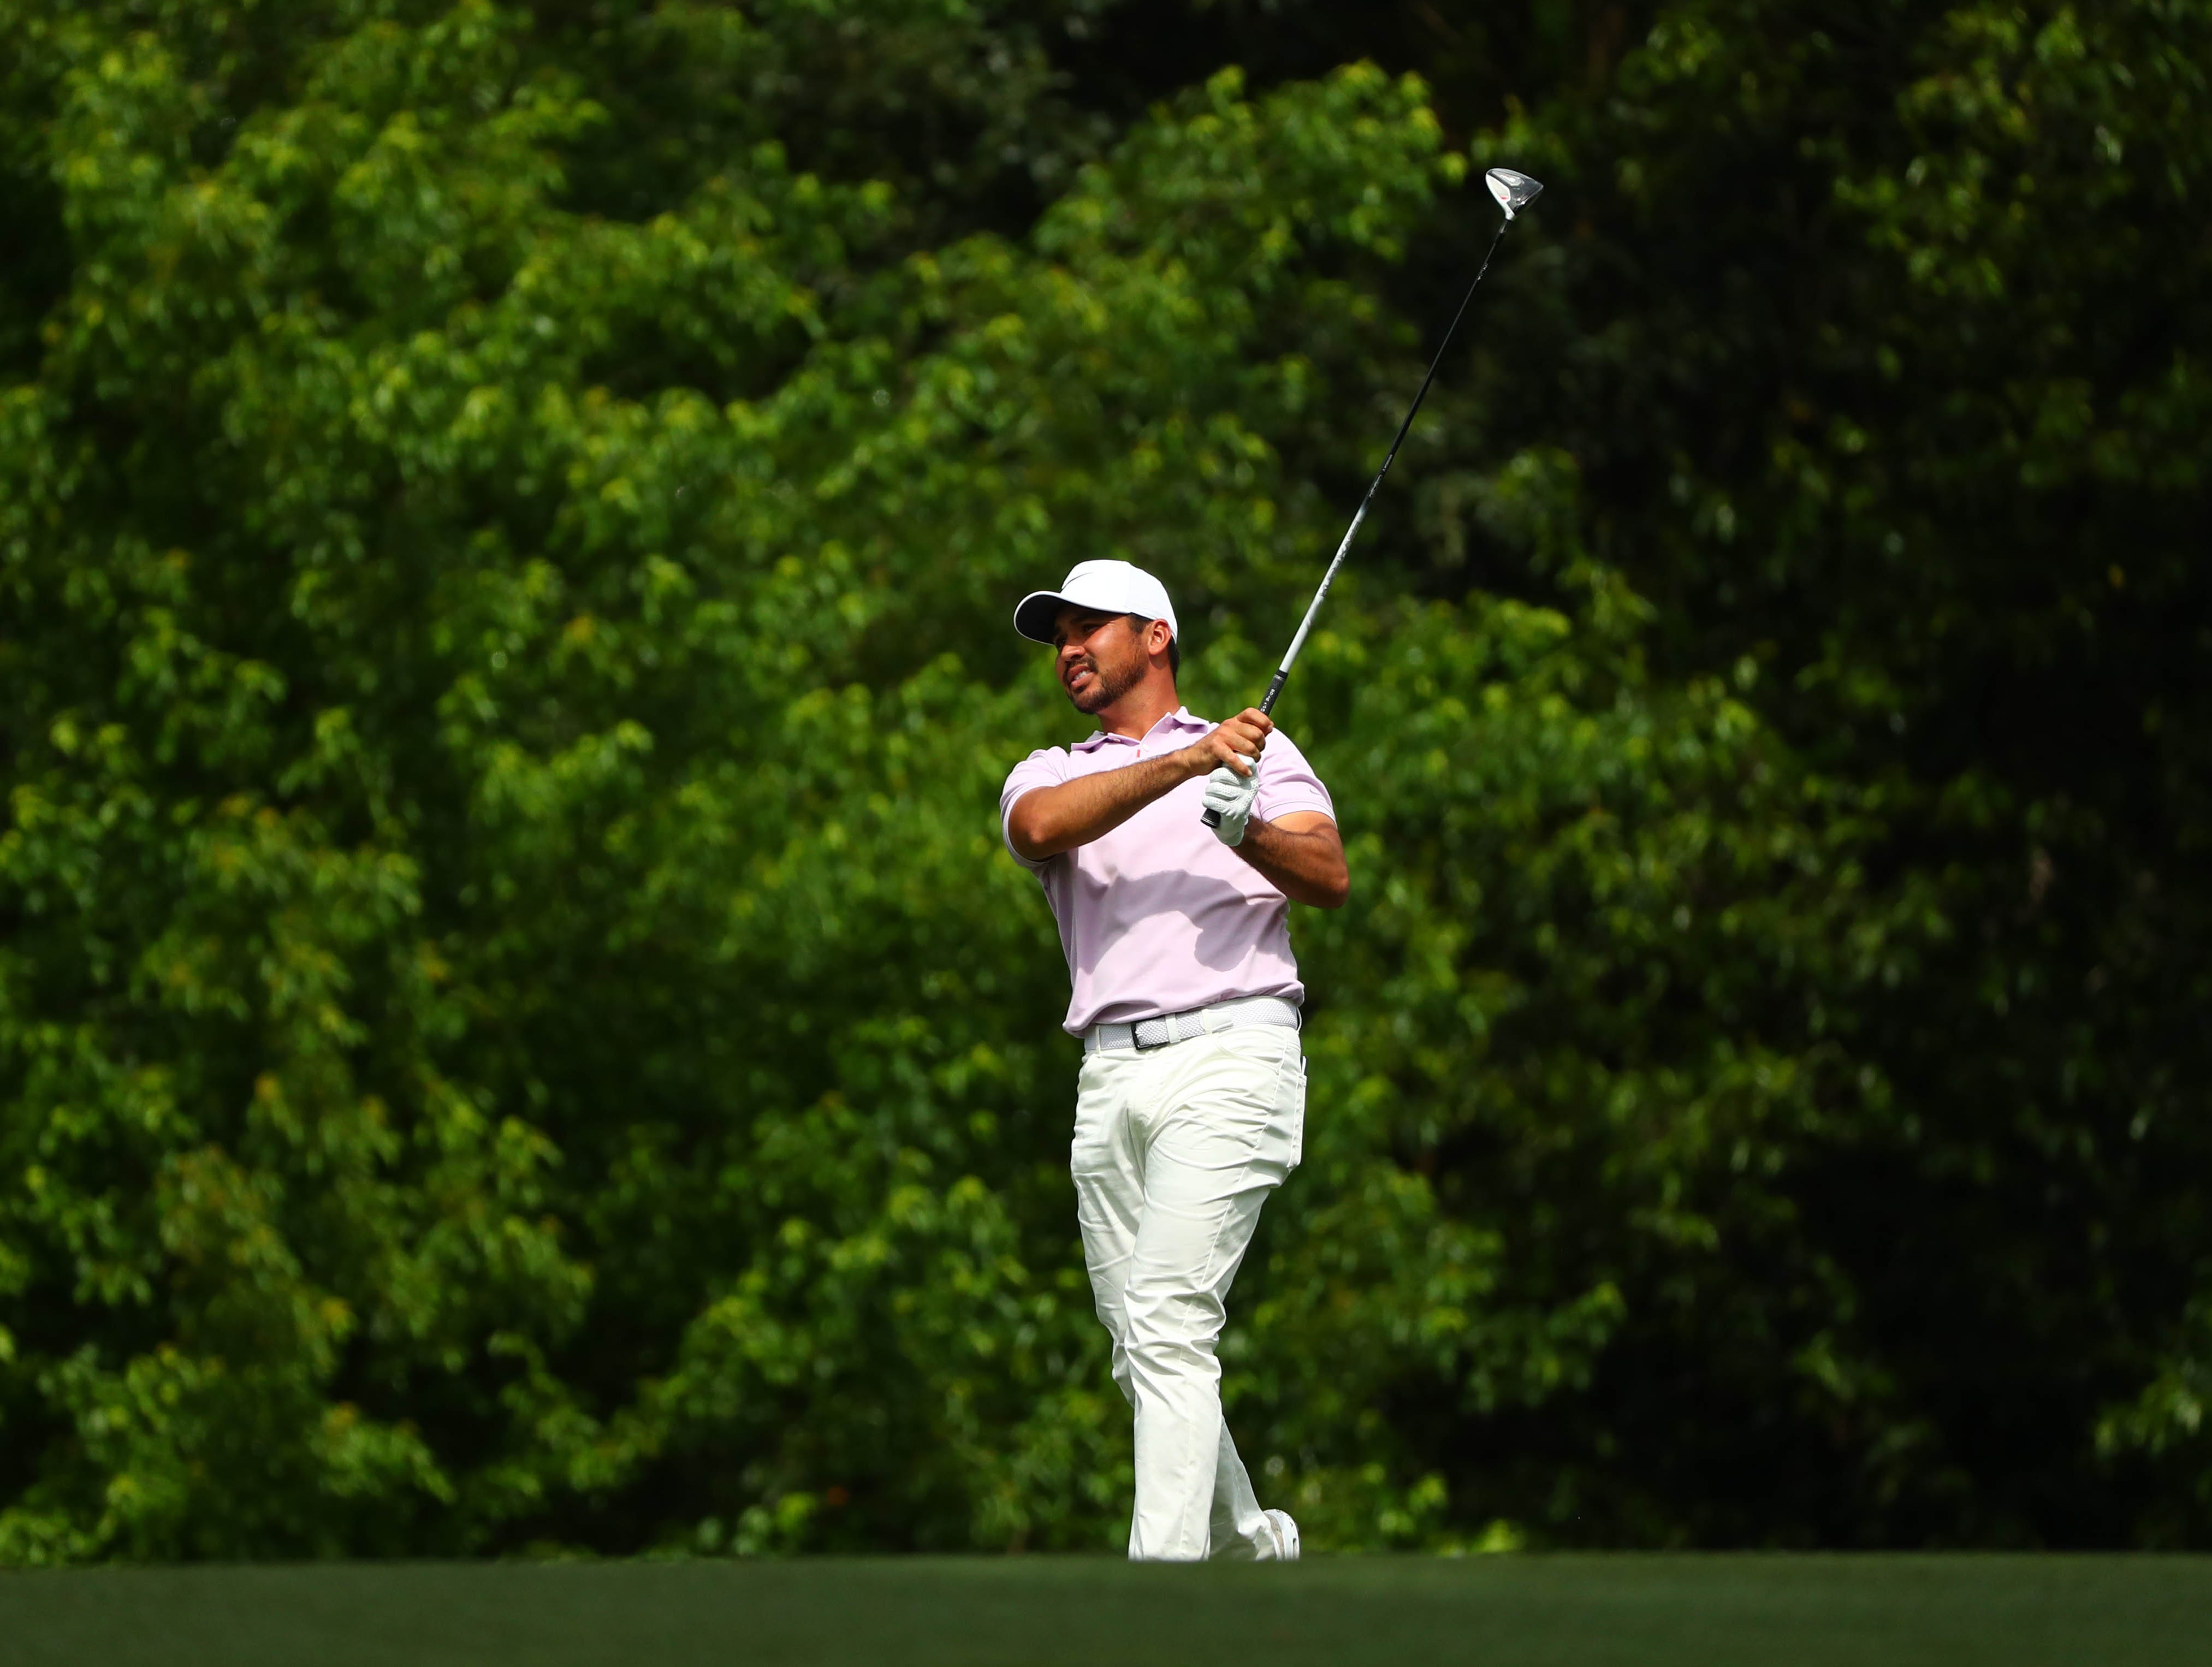 Apr 12, 2019; Augusta, GA, USA; Jason Day plays a shot on the 2nd hole during the second round of The Masters golf tournament at Augusta National Golf Club. Mandatory Credit: Rob Schumacher-USA TODAY Sports